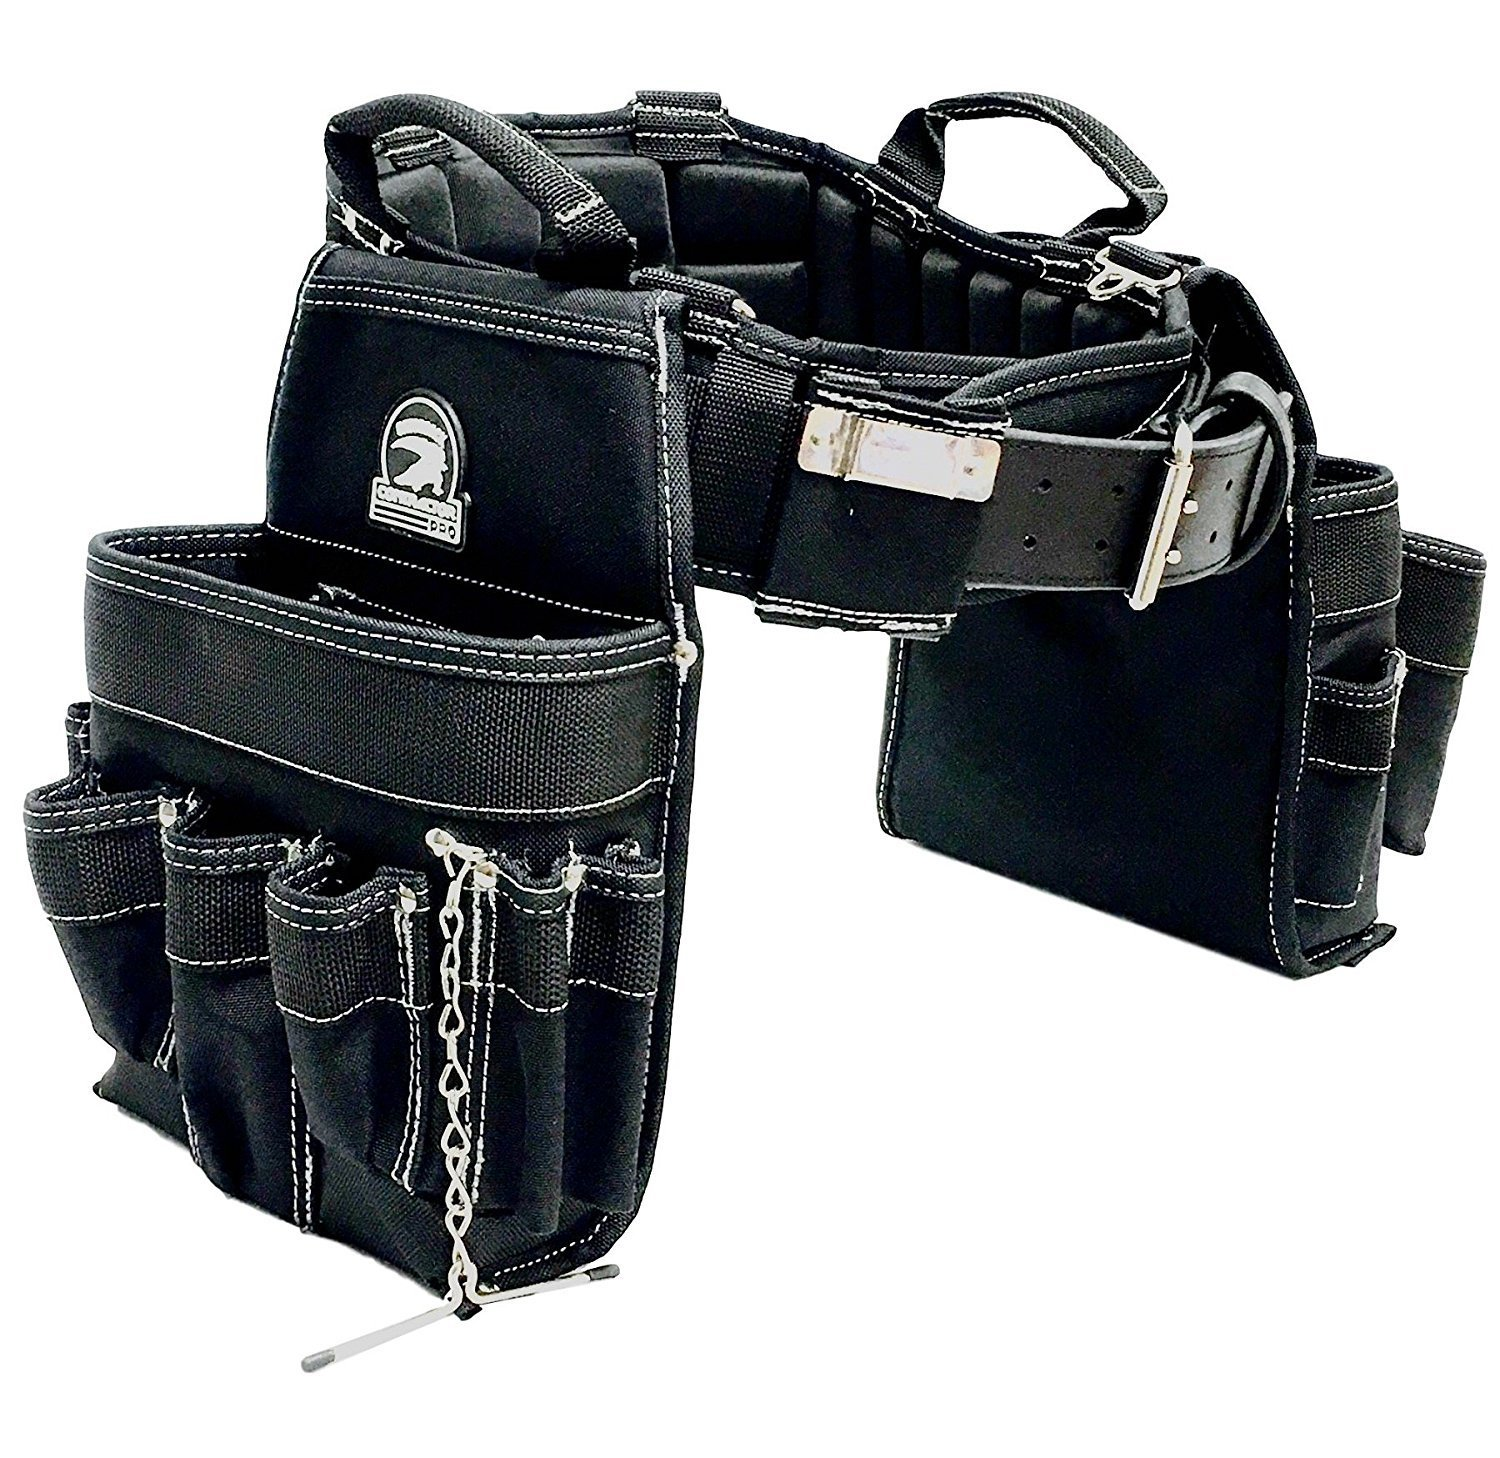 "TradeGear MEDIUM 31-35"" Electrician's Belt & Bag Combo – Heavy Duty Electricians Tool Belt Designed for Maximum Comfort & Durability – Ideal for All Electricians Tools – Partnered w/GatorBack"